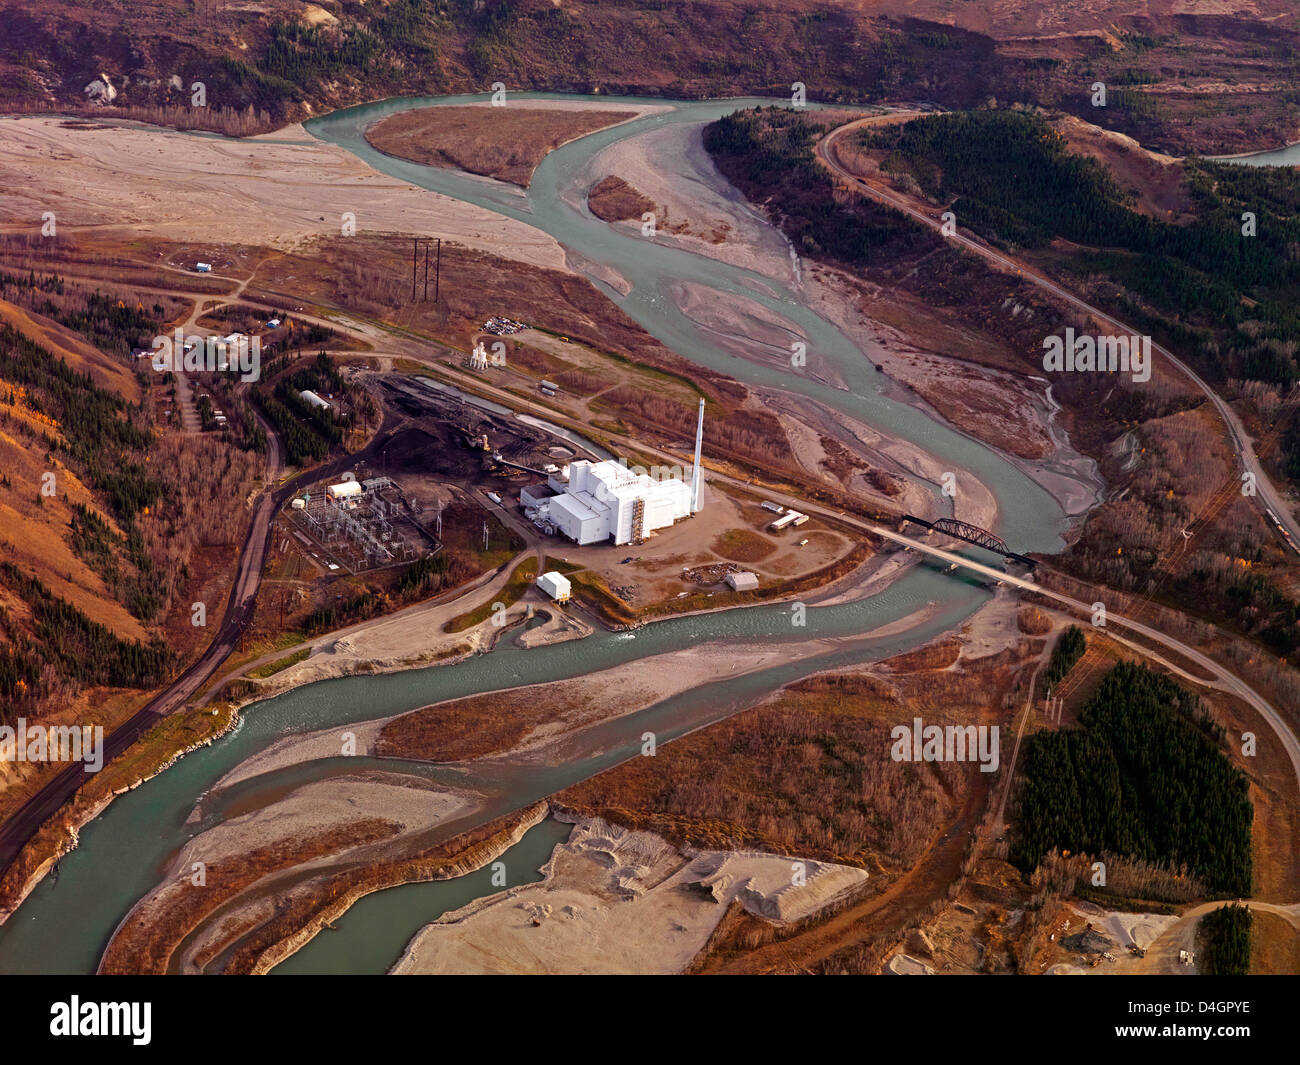 The Healy Clean Coal Power Plant in Alaska, an aerial photo - Stock Image